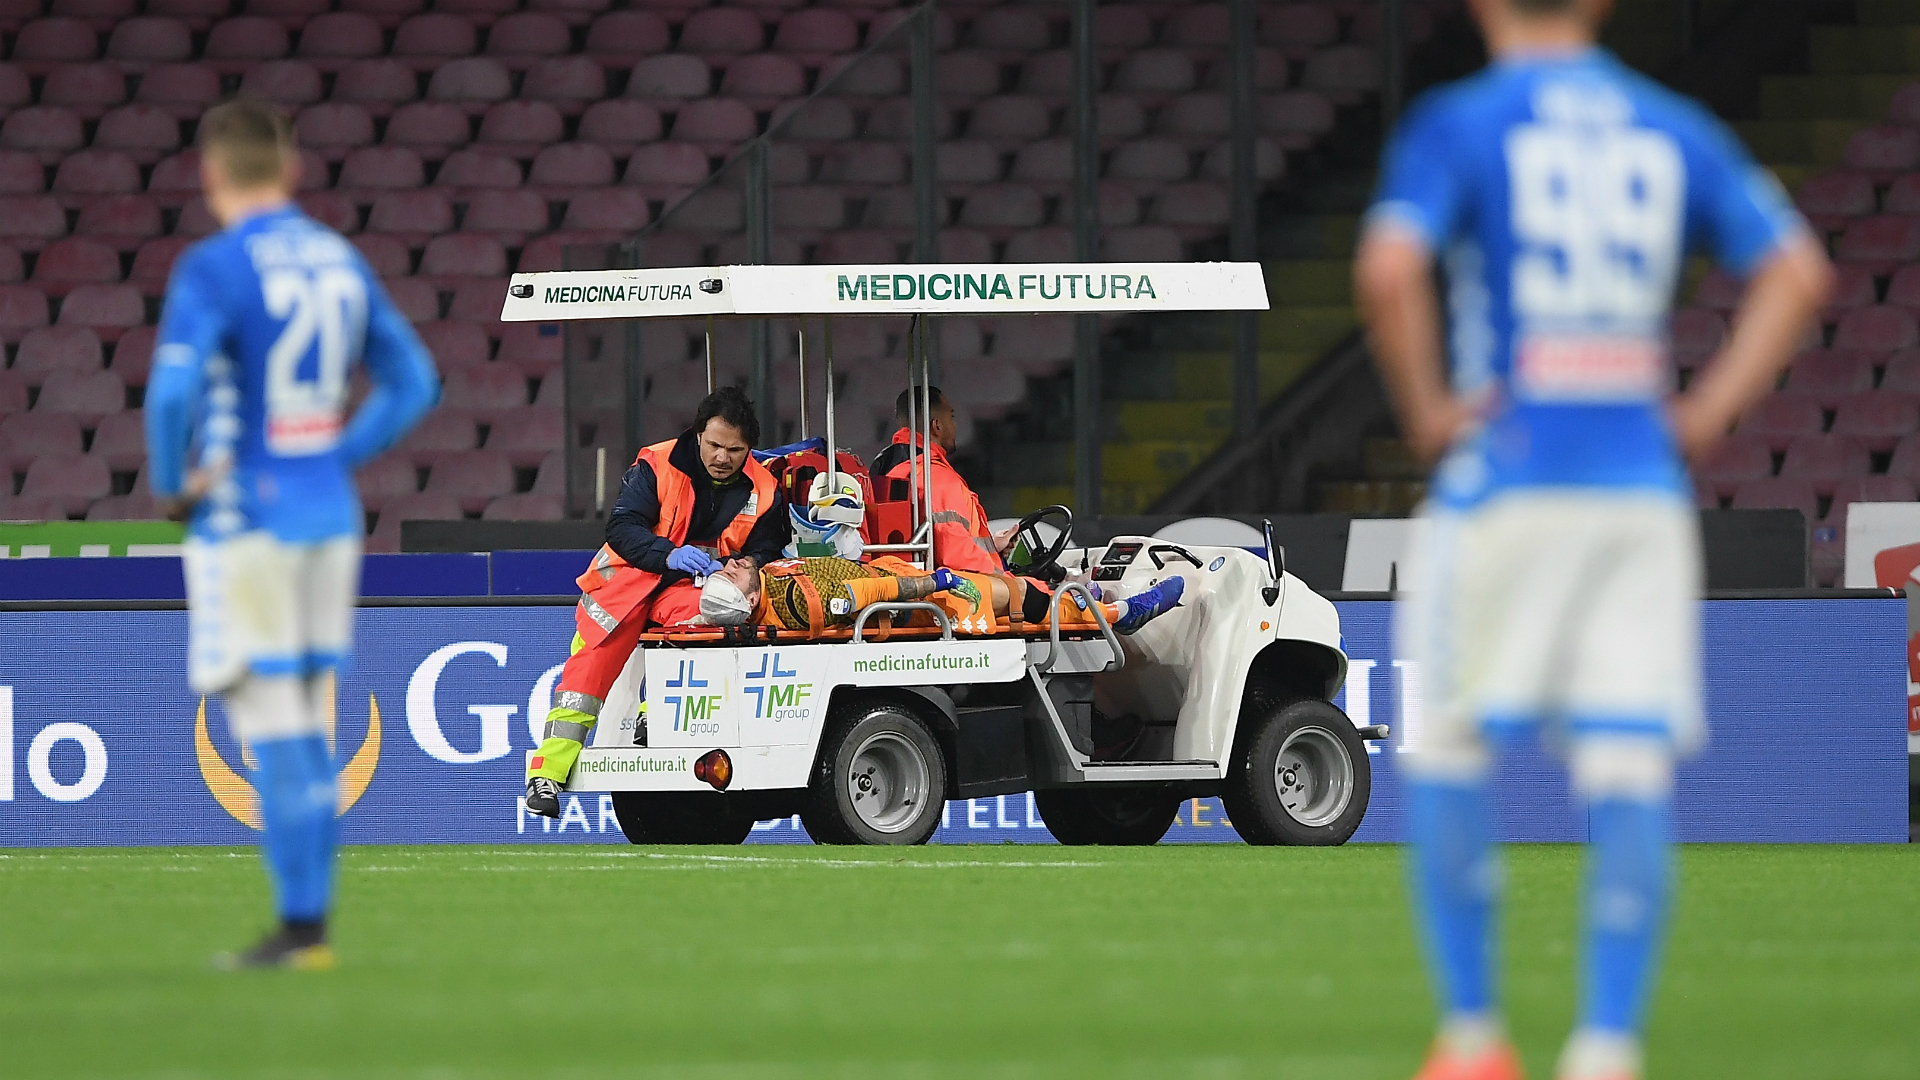 FIFA resists calls for concussion change amid threat of 'catastrophic' injury